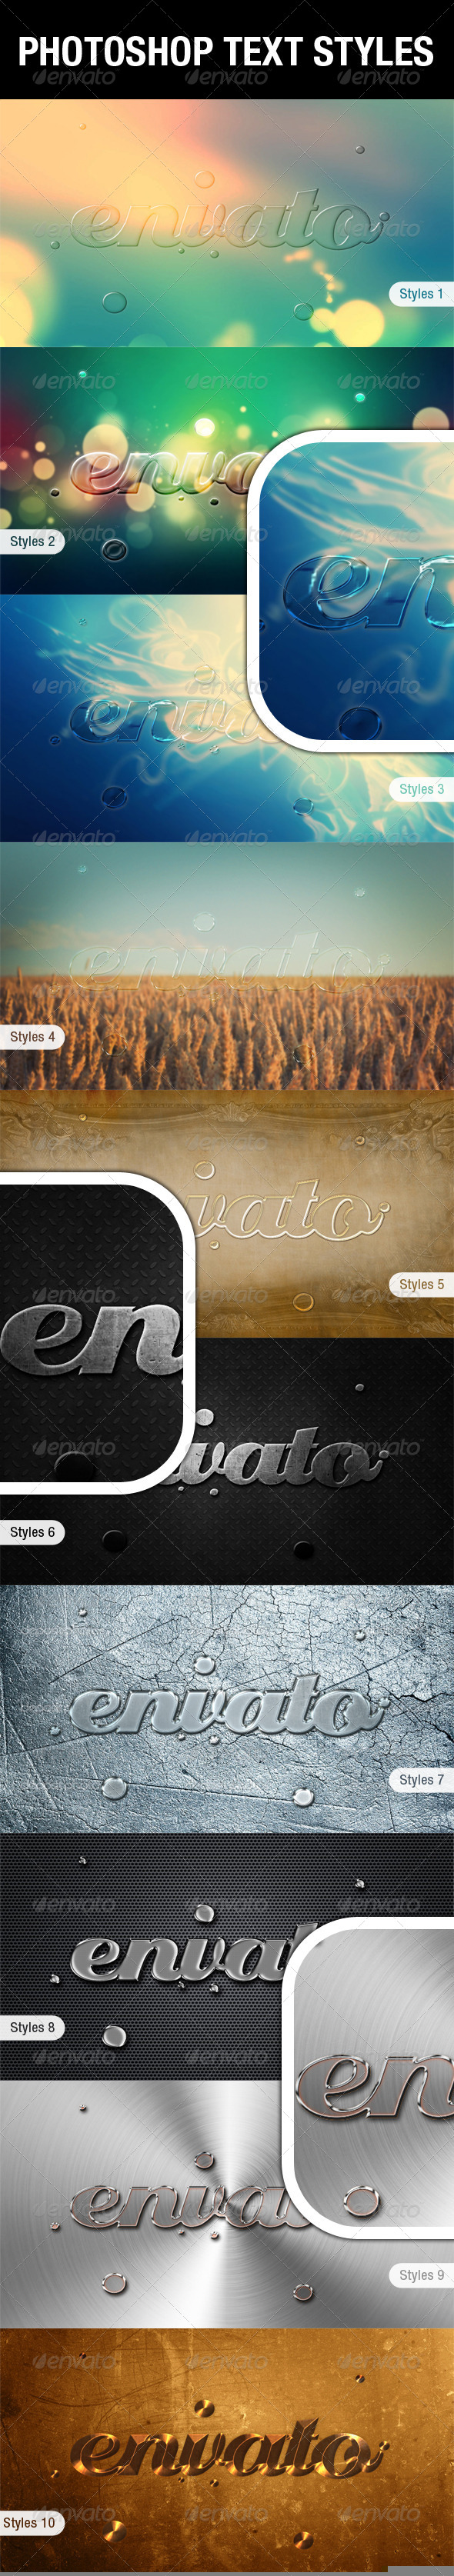 GraphicRiver Glass & Metals Photoshop Text Styles 4759732